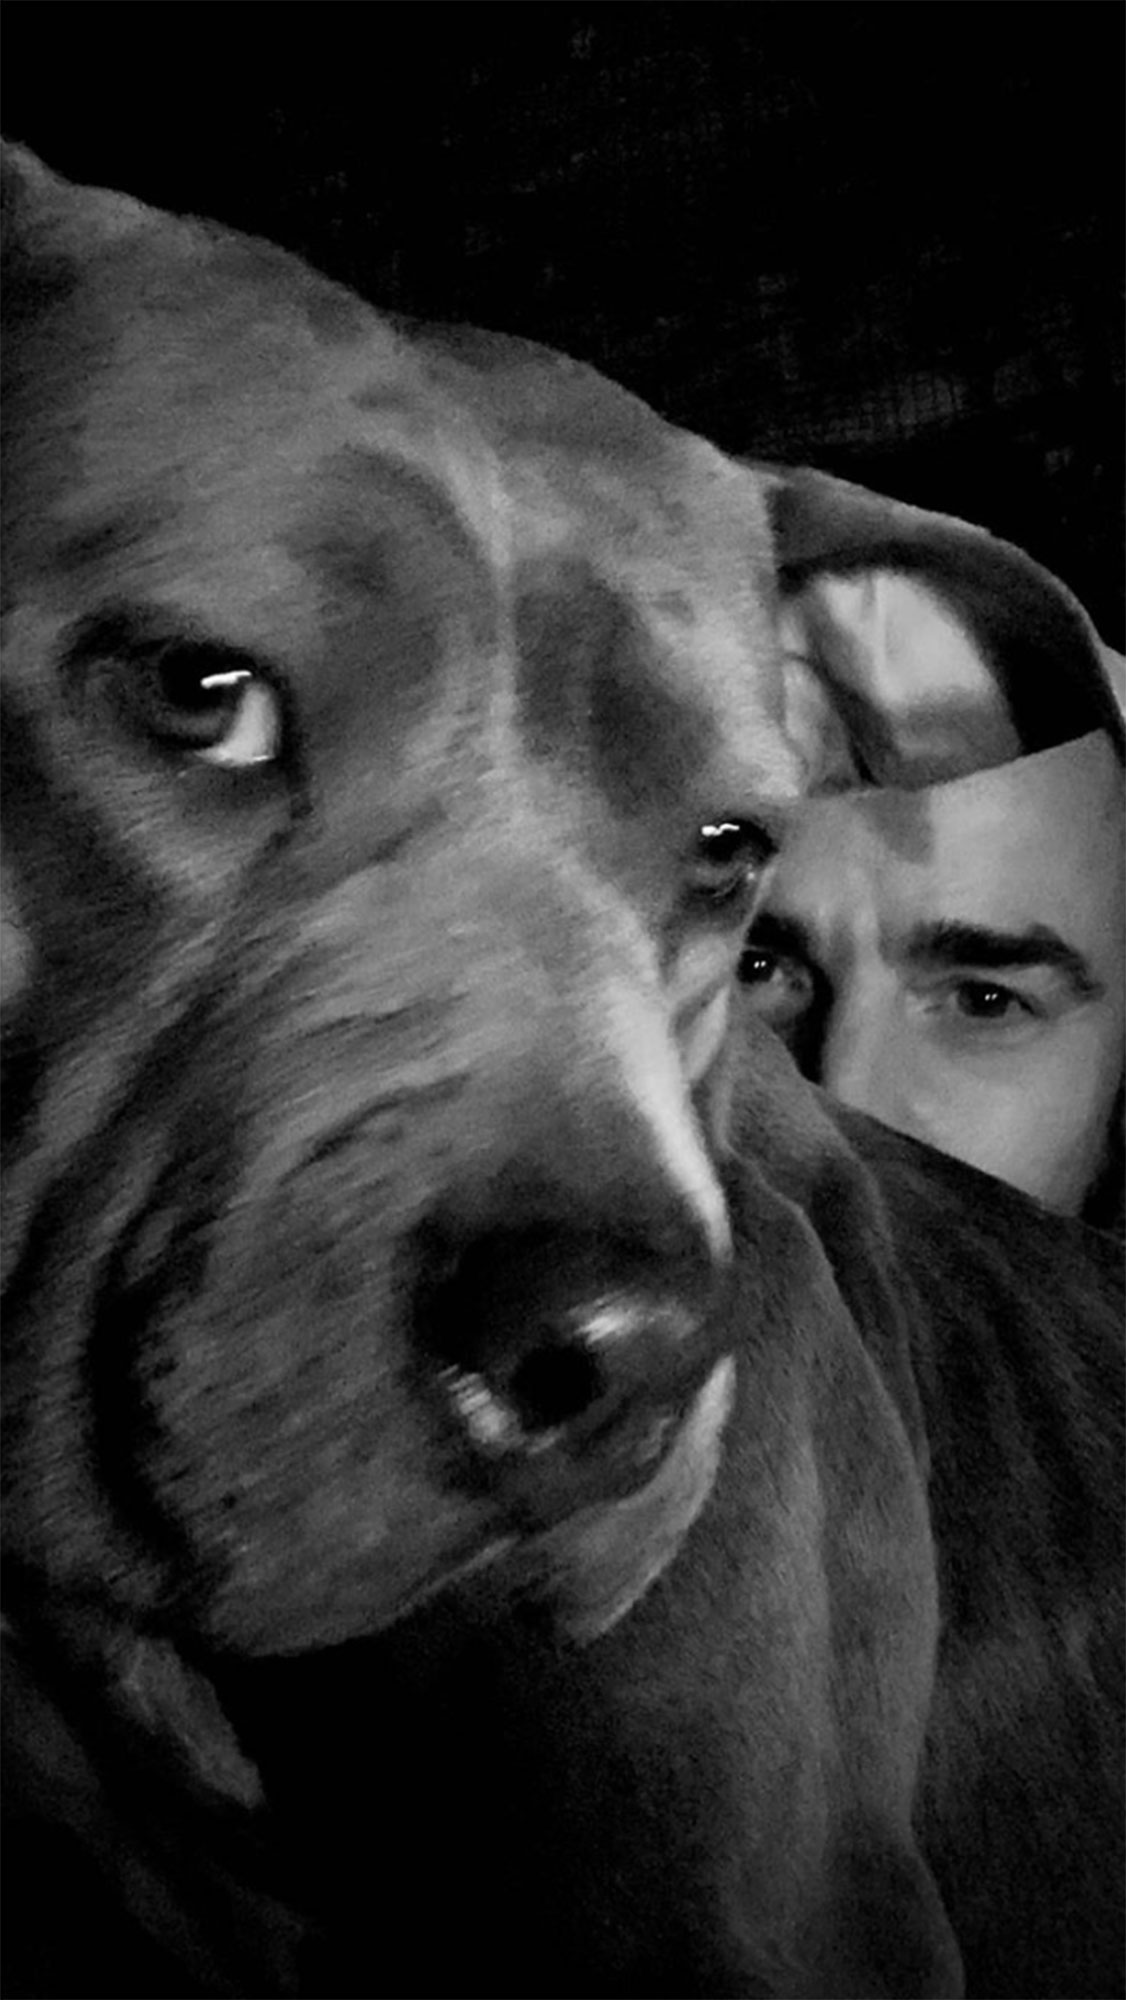 Justin Theroux Has a Lady and the Tramp-Style Date Night With His Dog - Justin Theroux and his dog